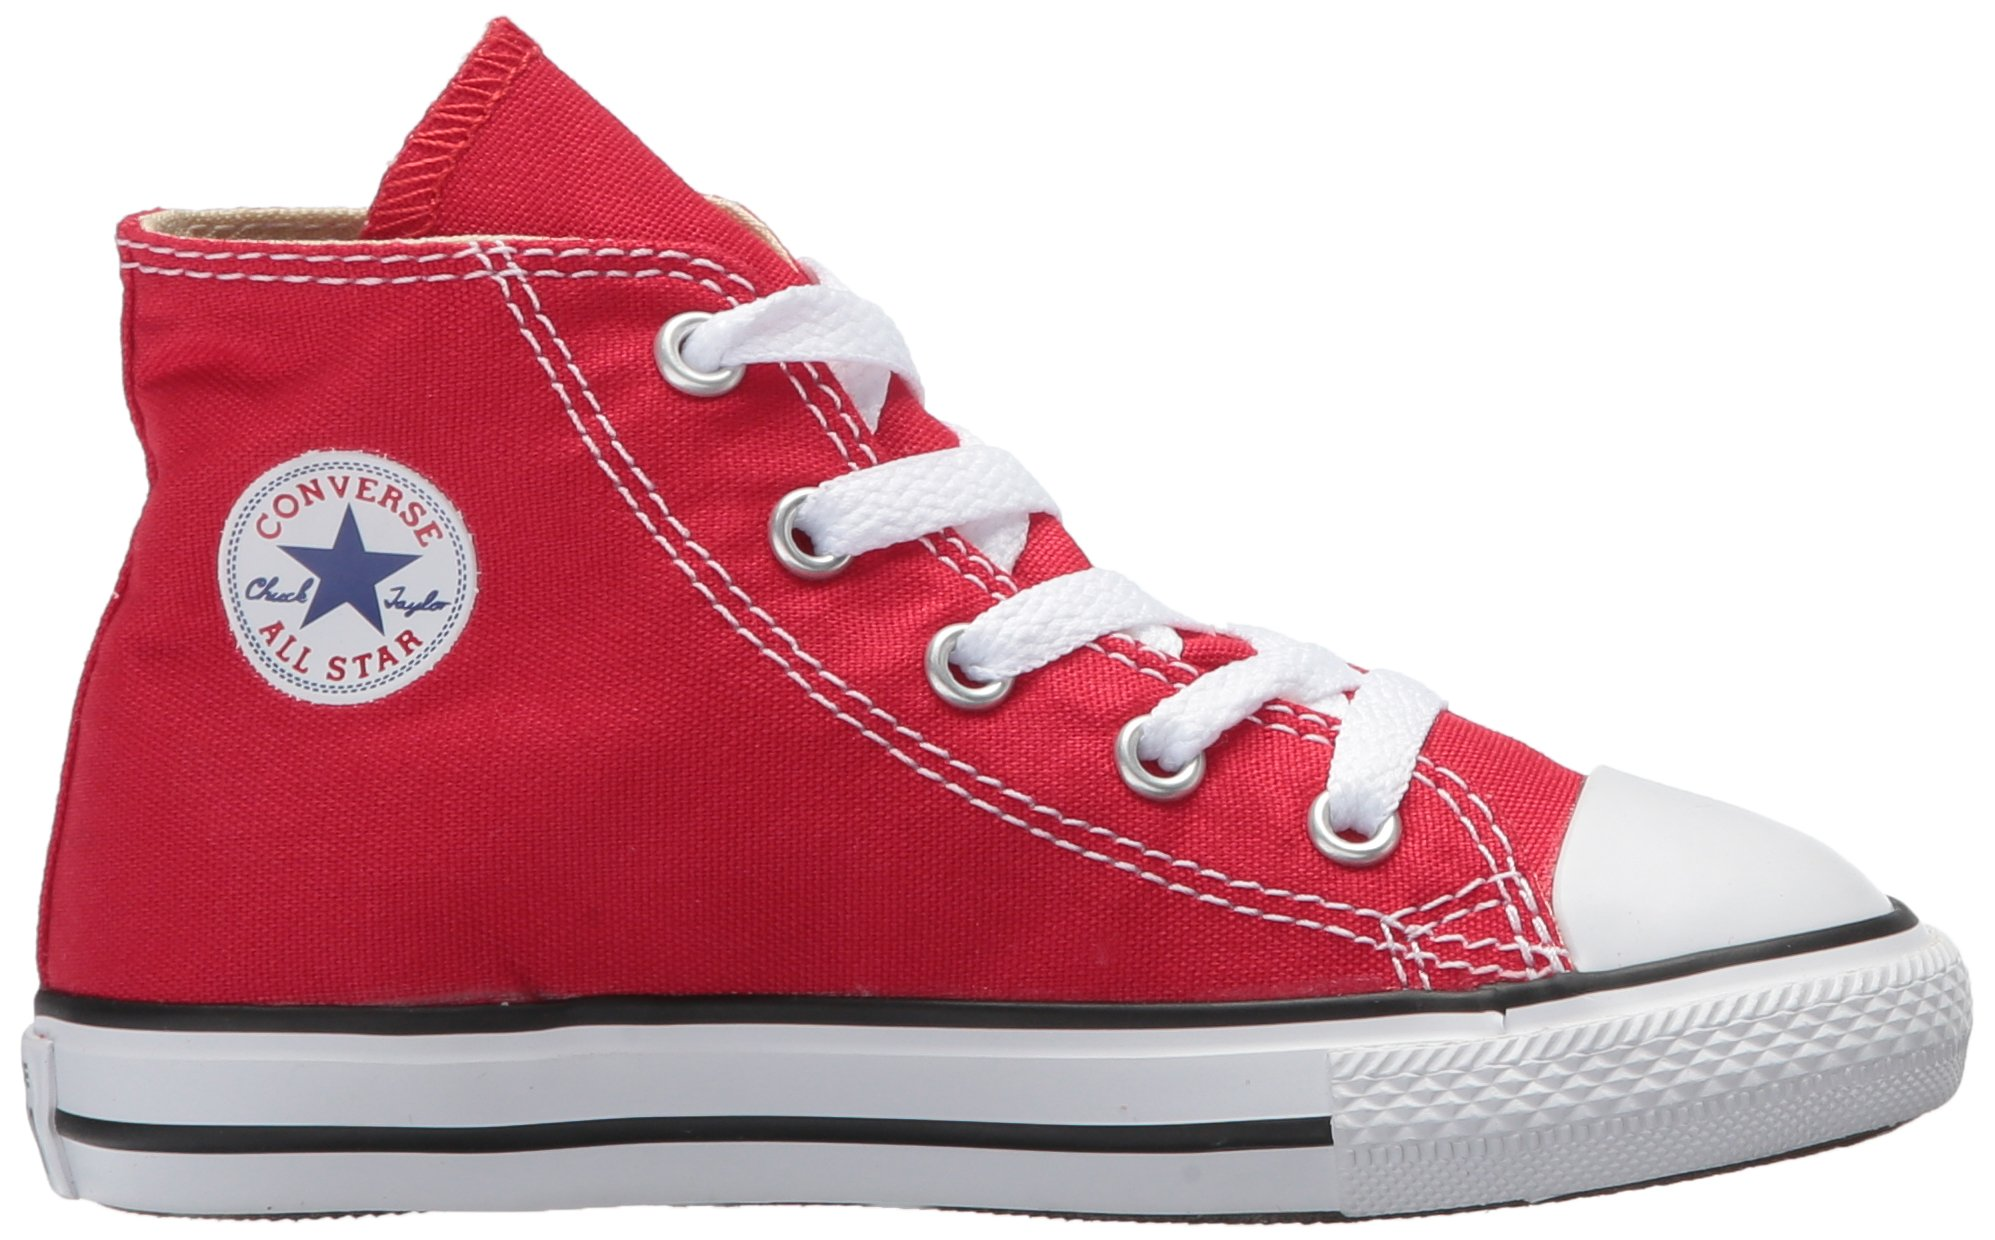 Converse Kids Chuck Taylor Classic Hi Red Sneaker - 10.5 by Converse (Image #11)